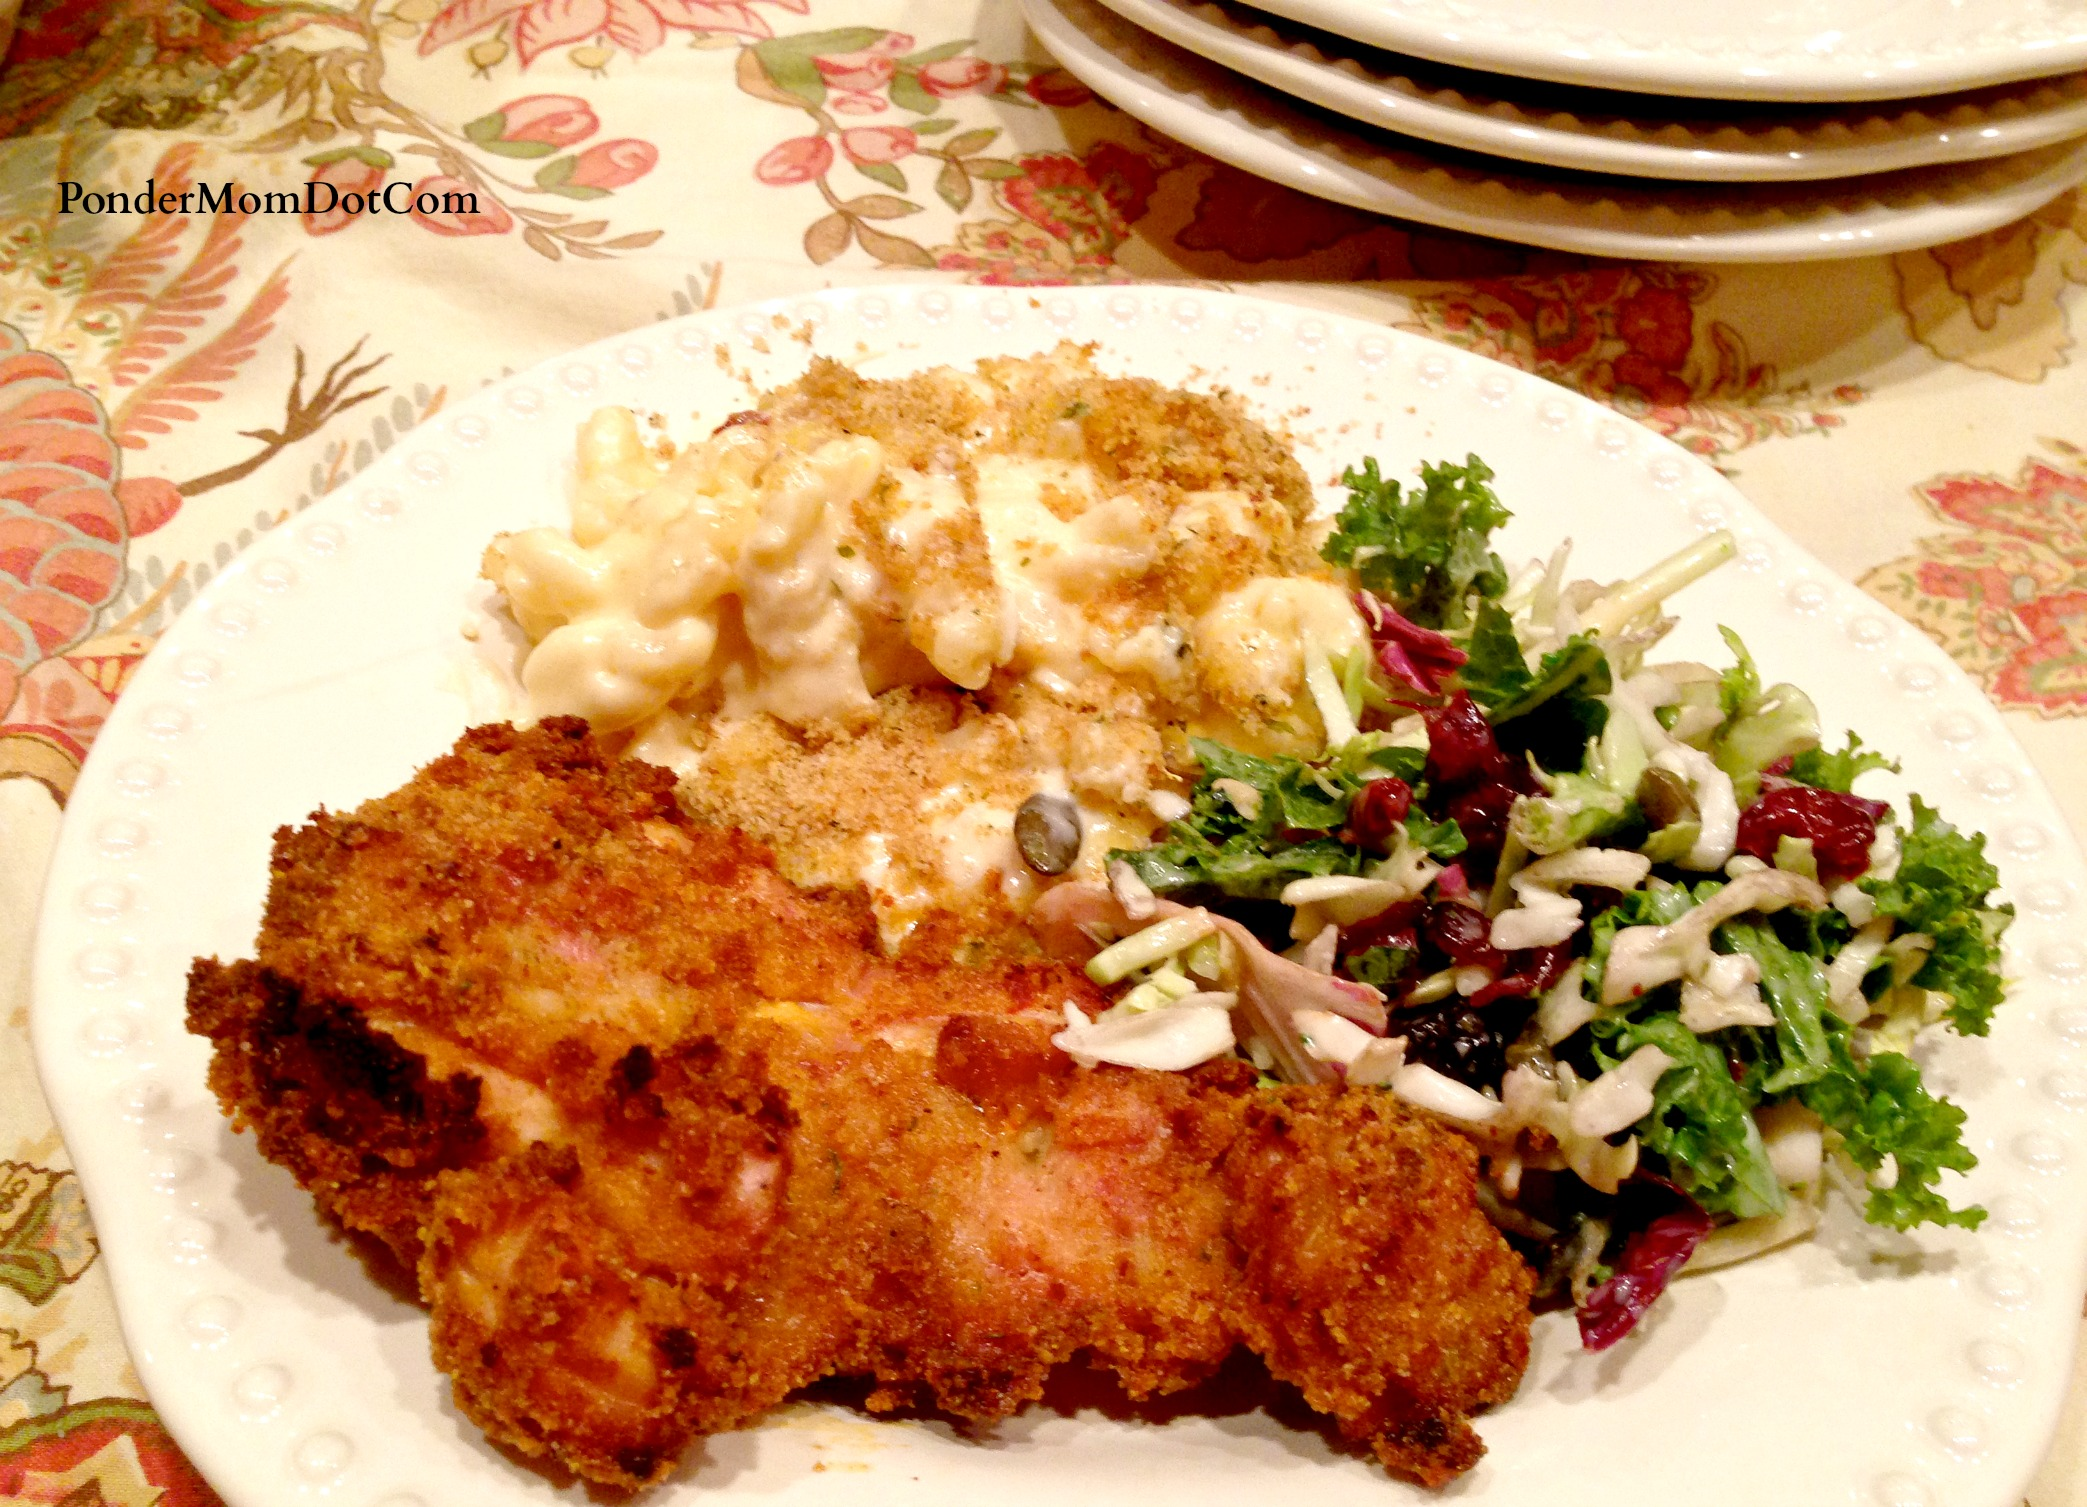 Oven-Fried Chipotle Chicken